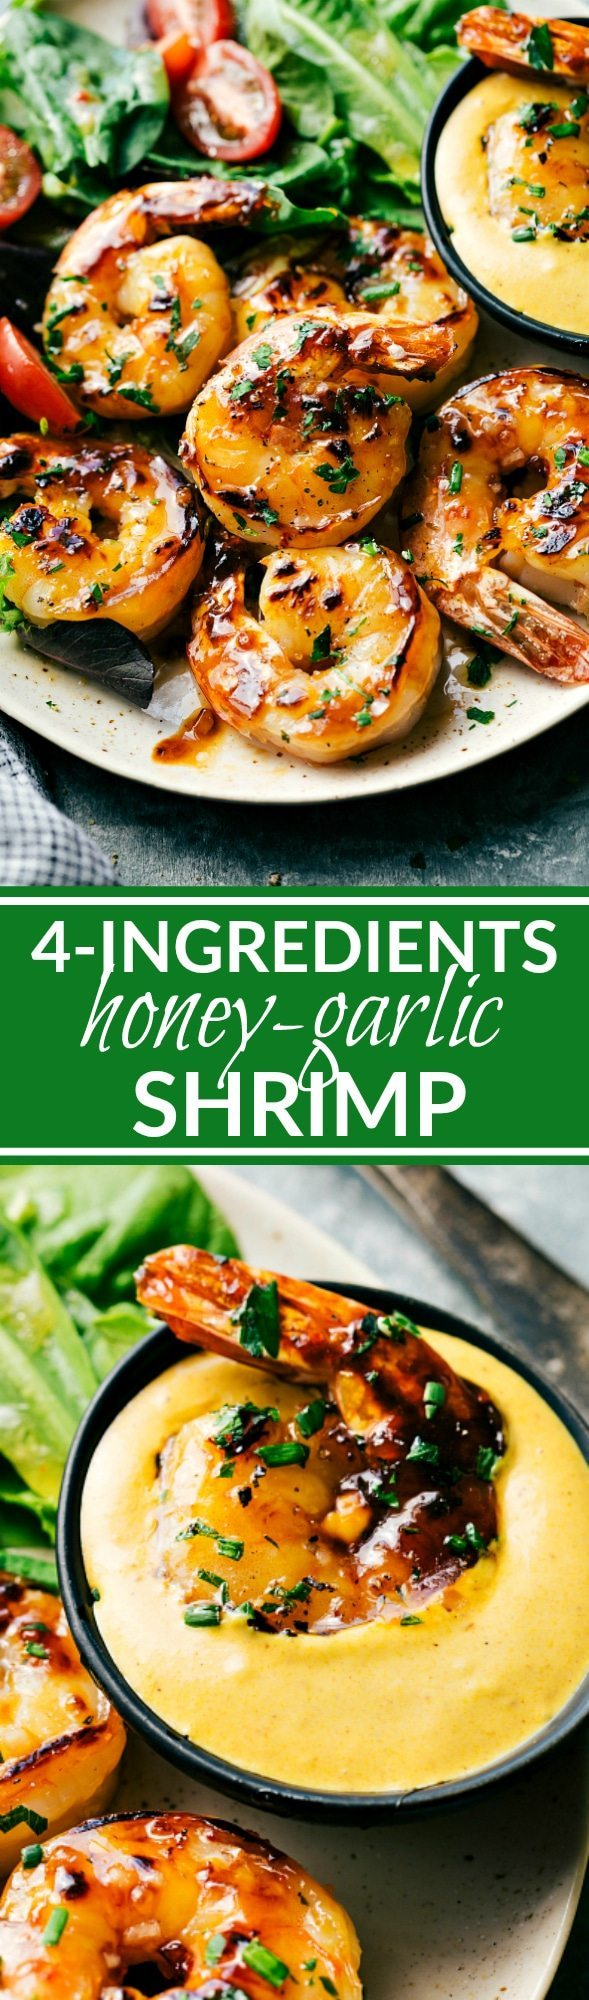 SWEET HONEY GARLIC SHRIMP! The easiest shrimp dish! Only threeingredients double as a marinade and basting sauce to create this ultra-flavorful sweet honey-garlic shrimp. Plus a simple (optional) 3-ingredient dipping sauce! Recipe via chelseasmessyapron.com